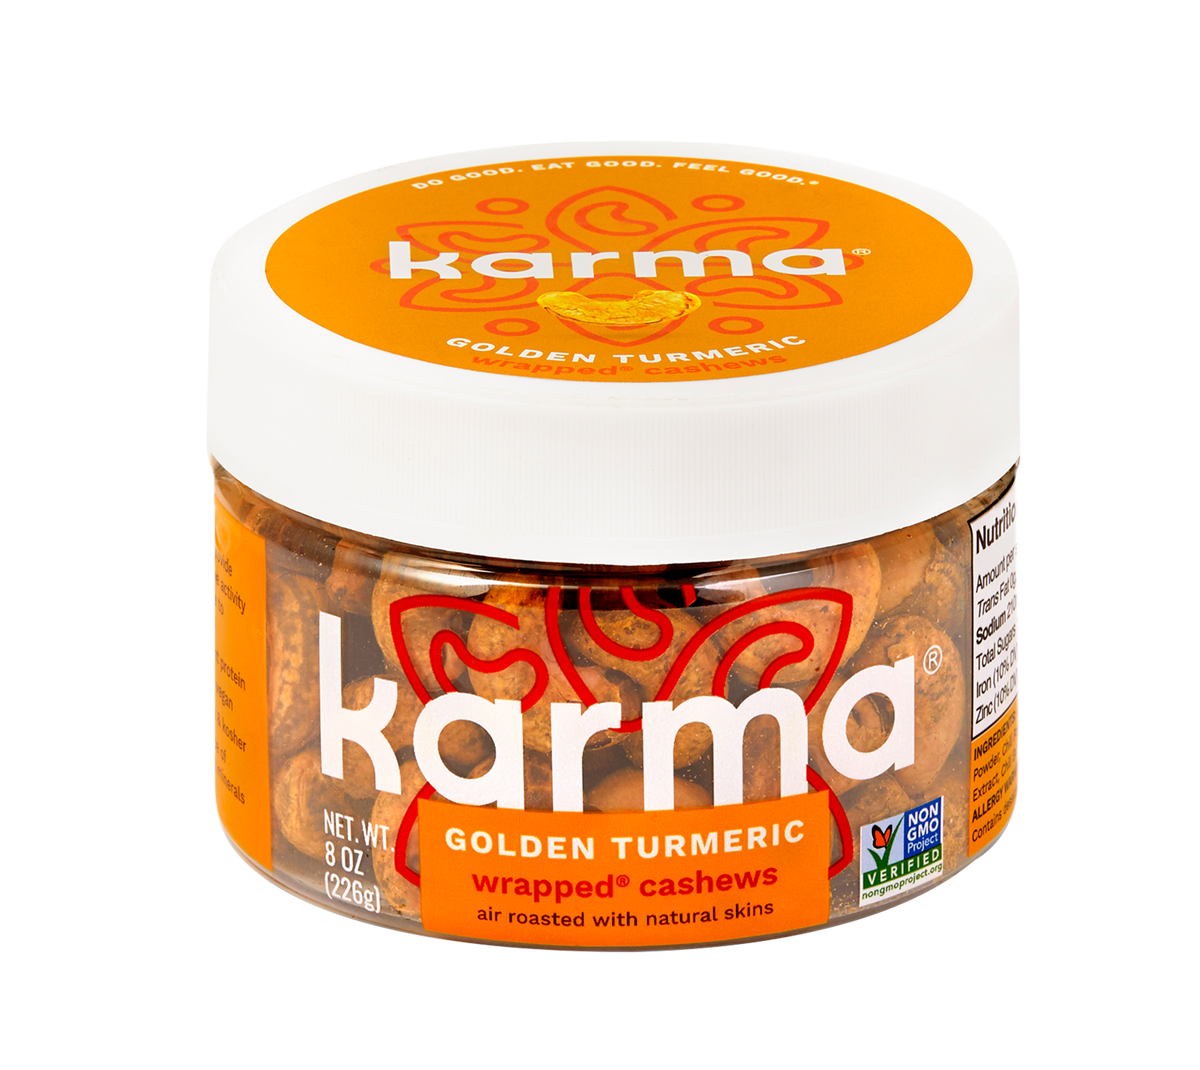 Golden Turmeric Wrapped® Cashews